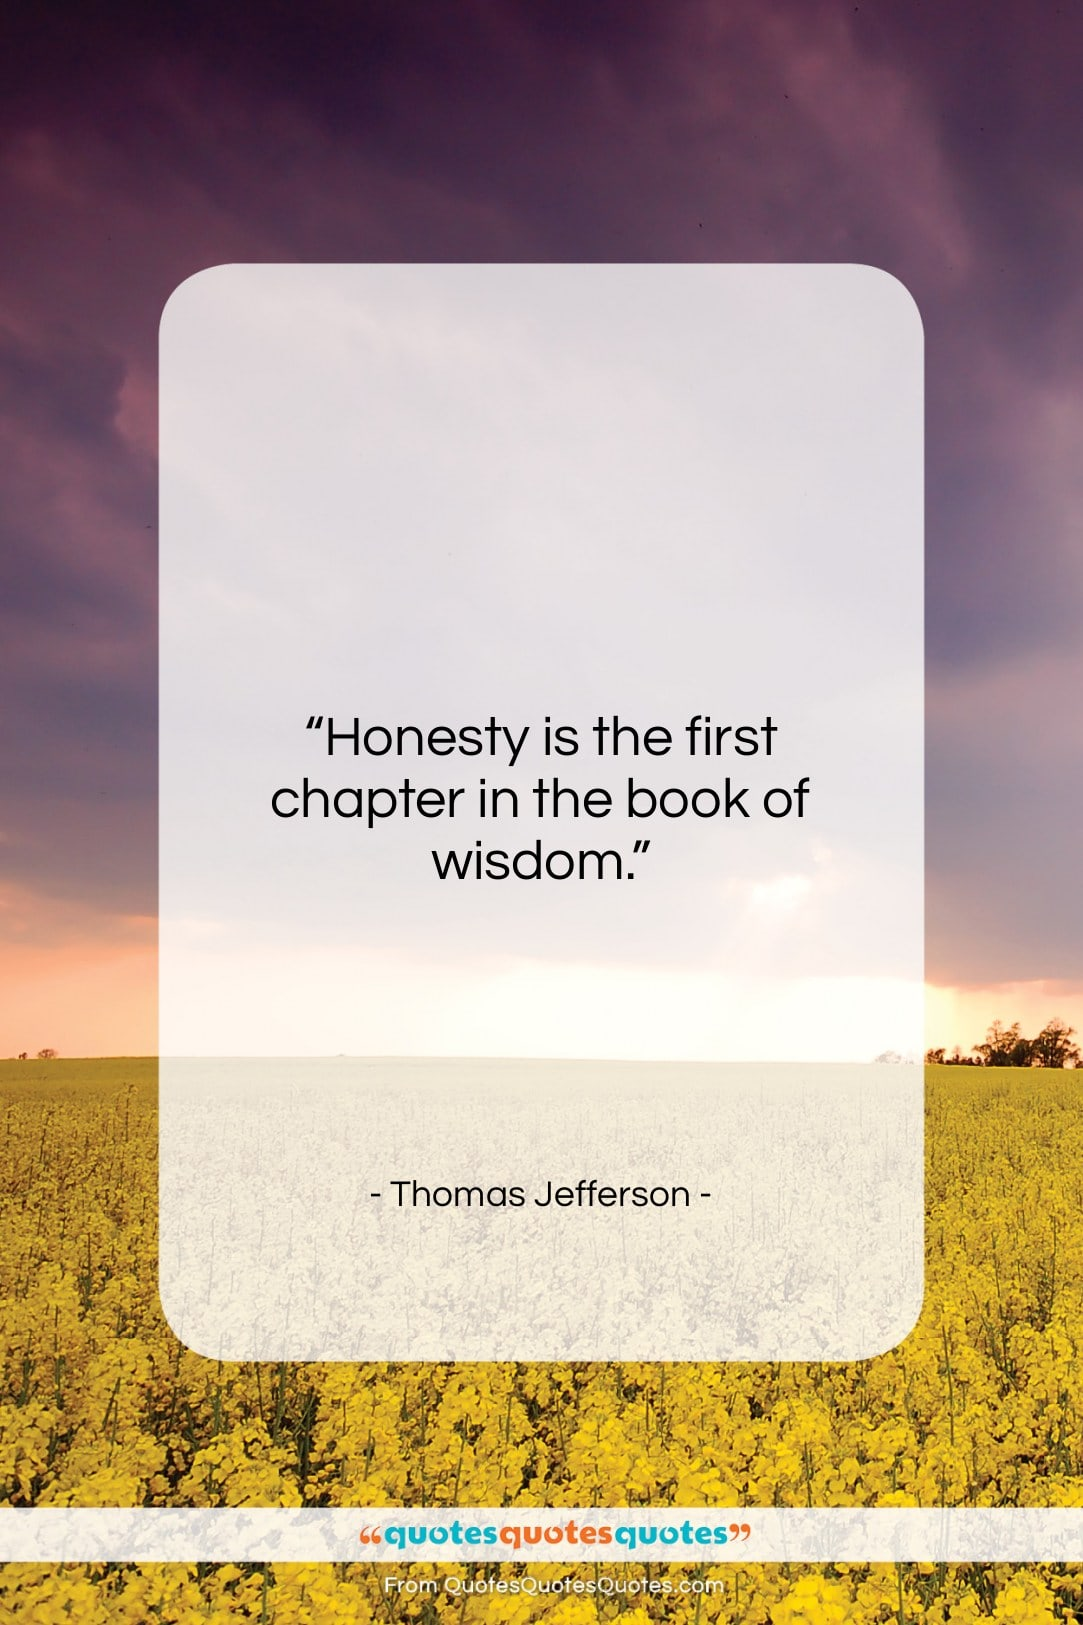 Get the whole Thomas Jefferson quote: \